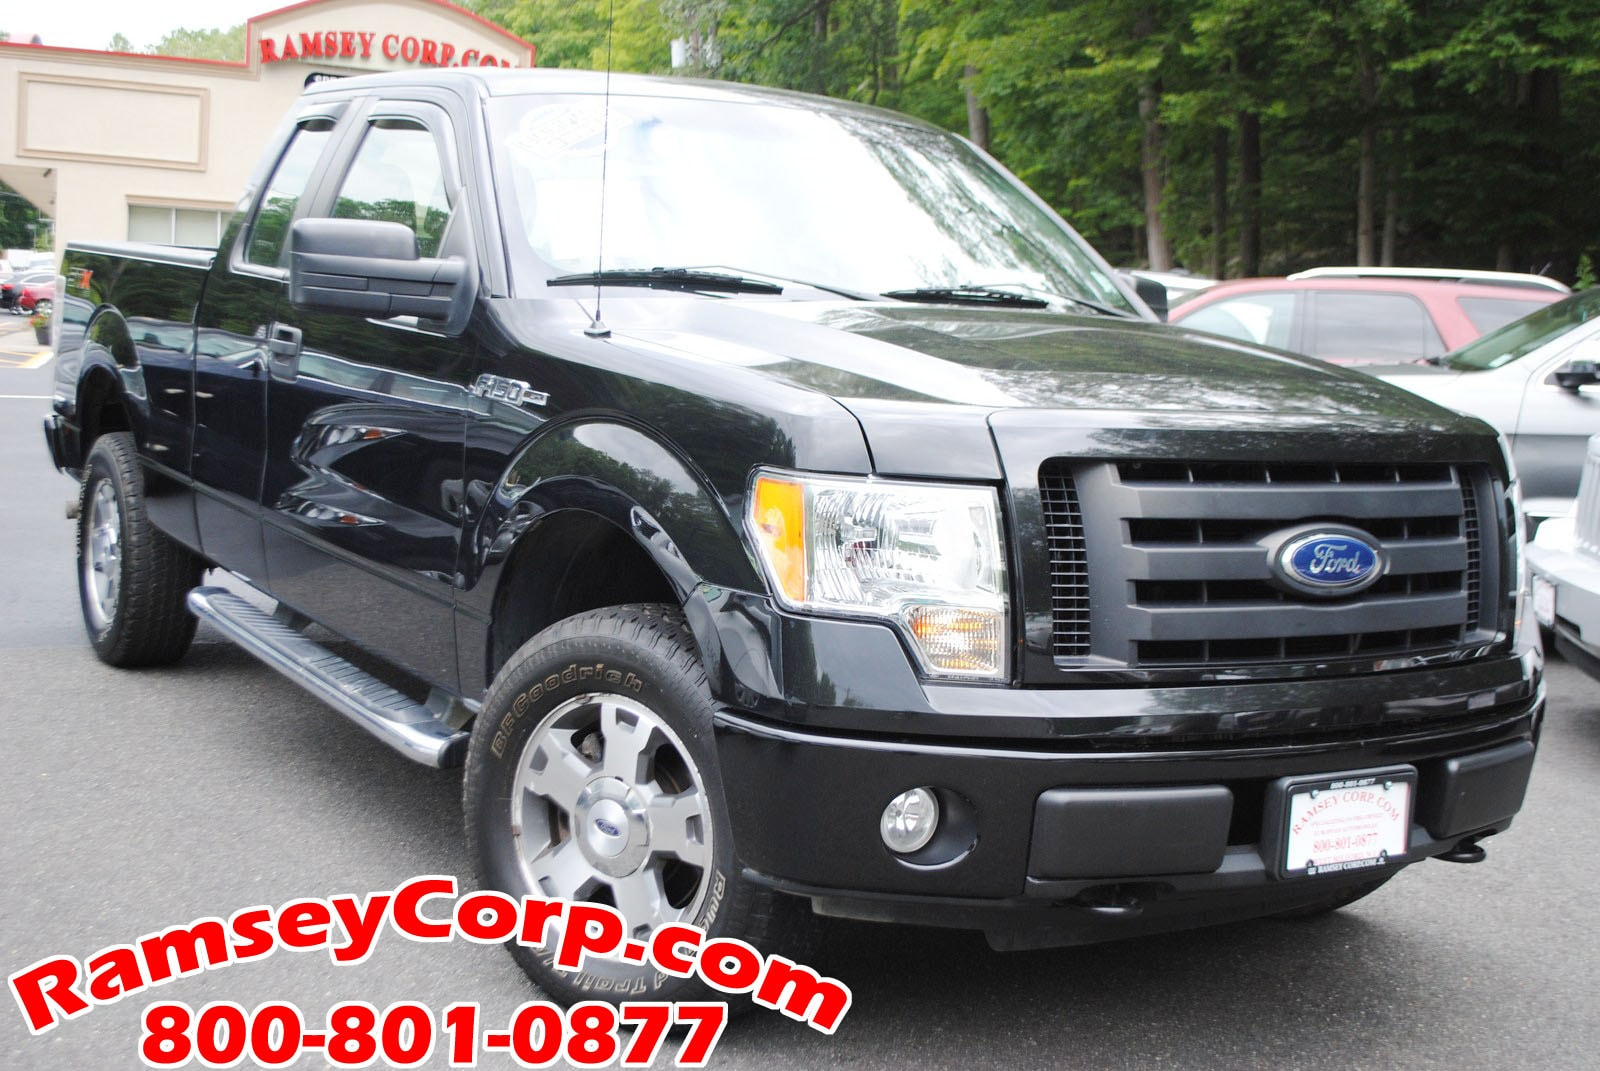 used 2010 ford f 150 for sale west milford nj rh ramseycorp com Ford F-150 Manual Transmission Ford F-150 Manuals PDF